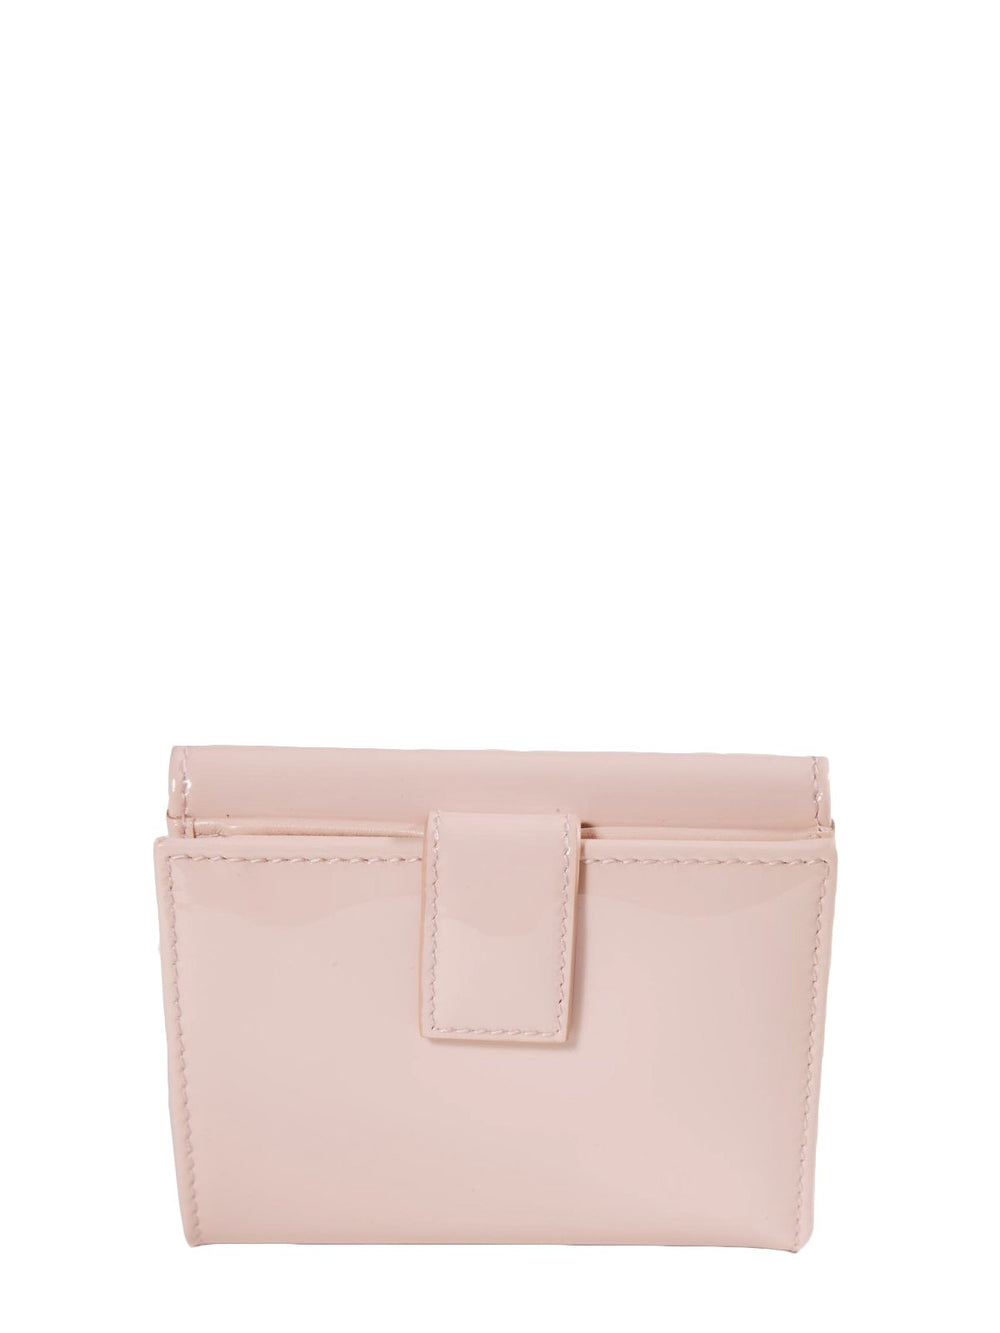 Beige Vara bow French wallet, SALVATORE FERRAGAMO - elilhaam.com